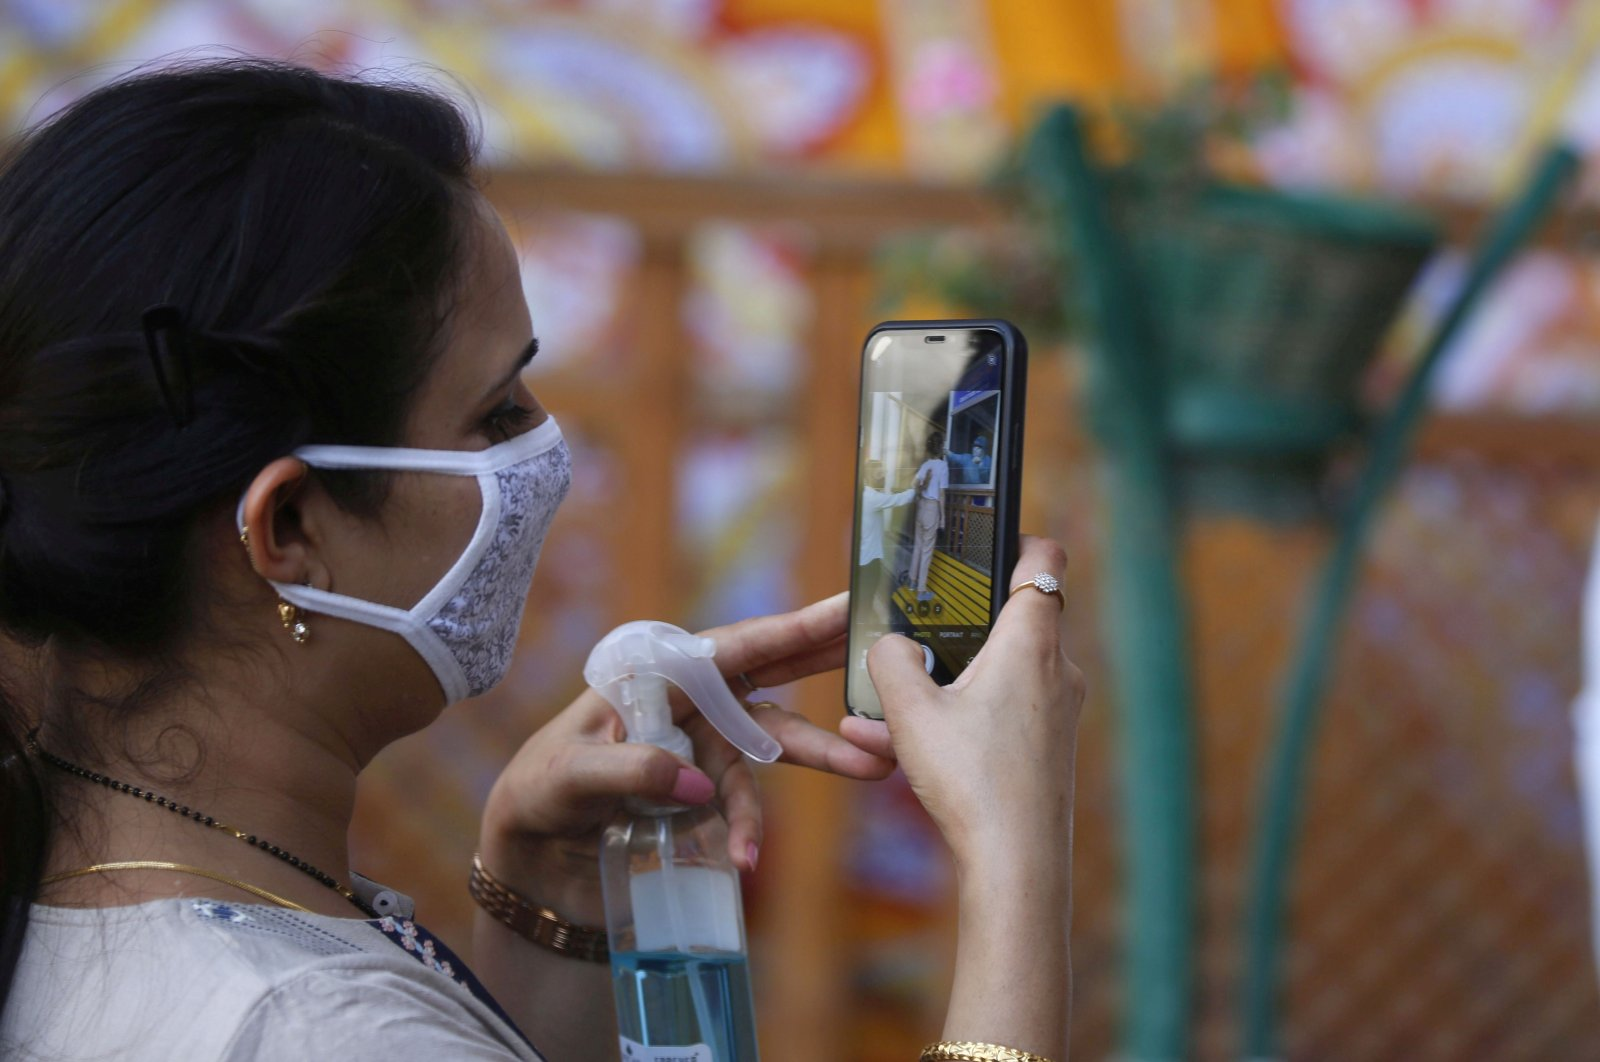 A woman takes a photograph with a cell phone as a paramedic conducts a rapid antigen test in Srinagar, the summer capital of Indian Kashmir, Aug. 10, 2020. (EPA Photo)